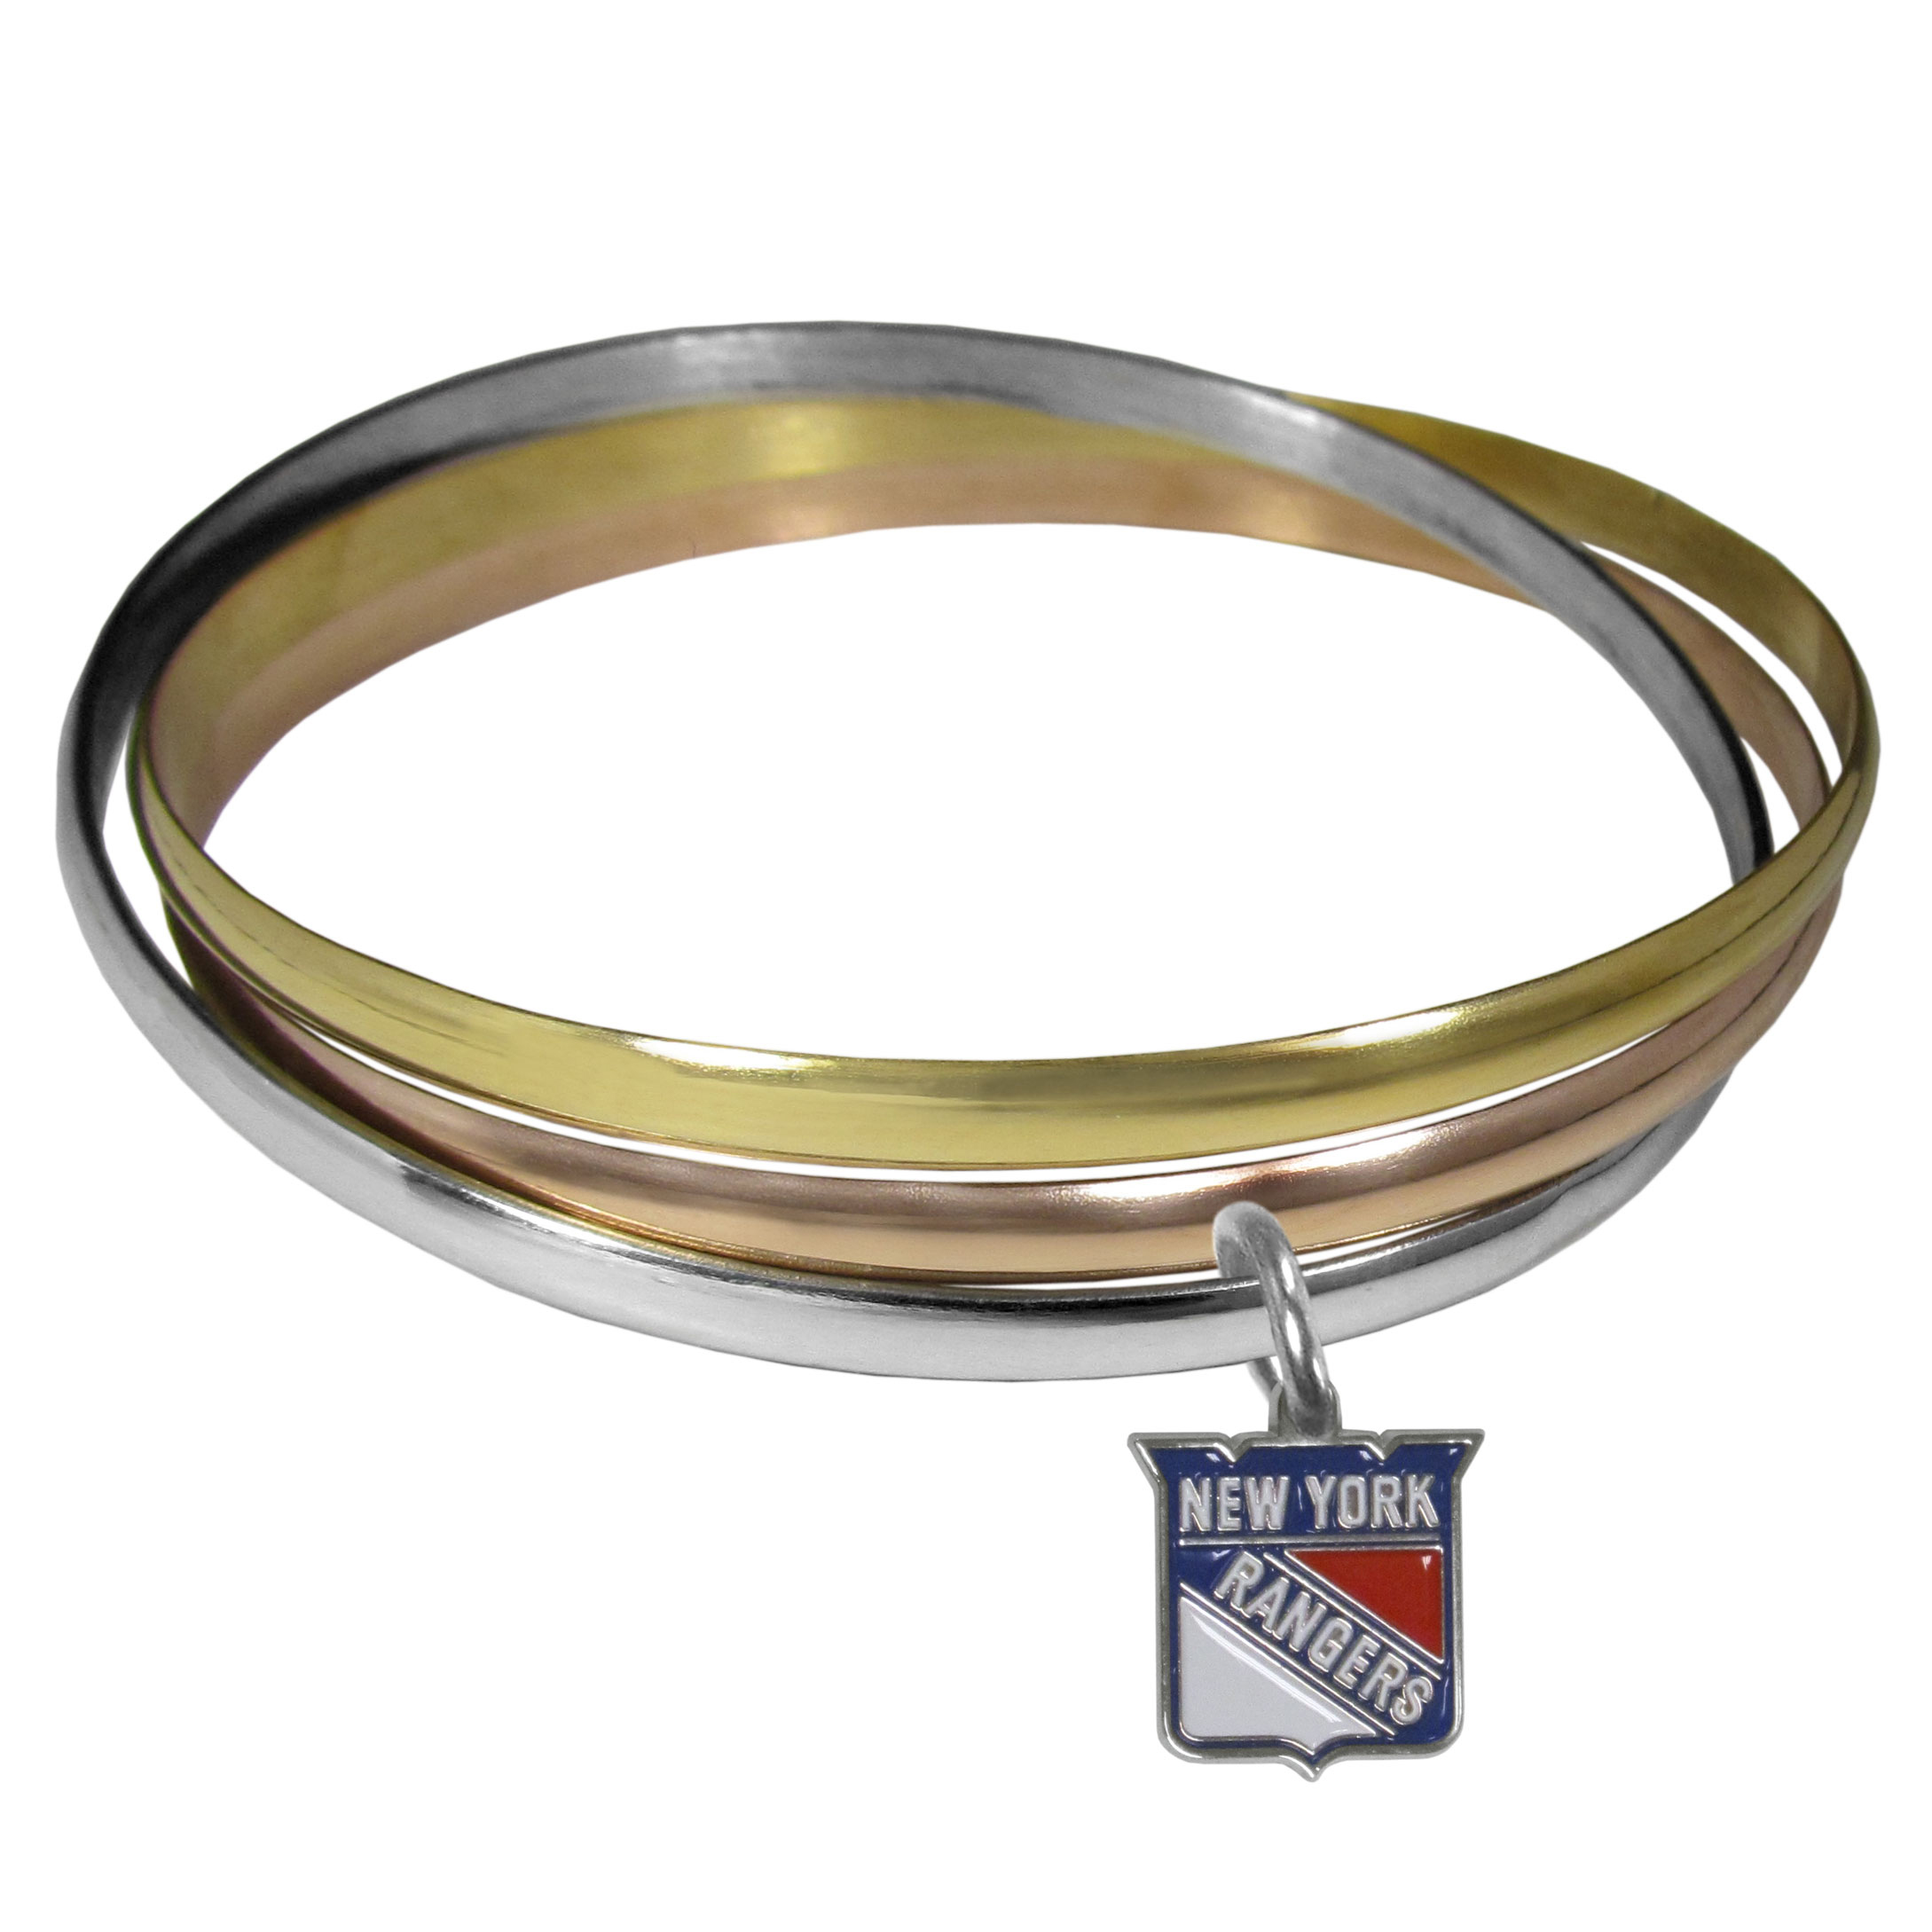 New York Rangers® Tri-color Bangle Bracelet - These beautiful bangles come in a interlocking style and feature a fully cast New York Rangers® charm with enameled team colors. The bracelet has a silver toned bangle, gold tone bangle and brass toned bangle.